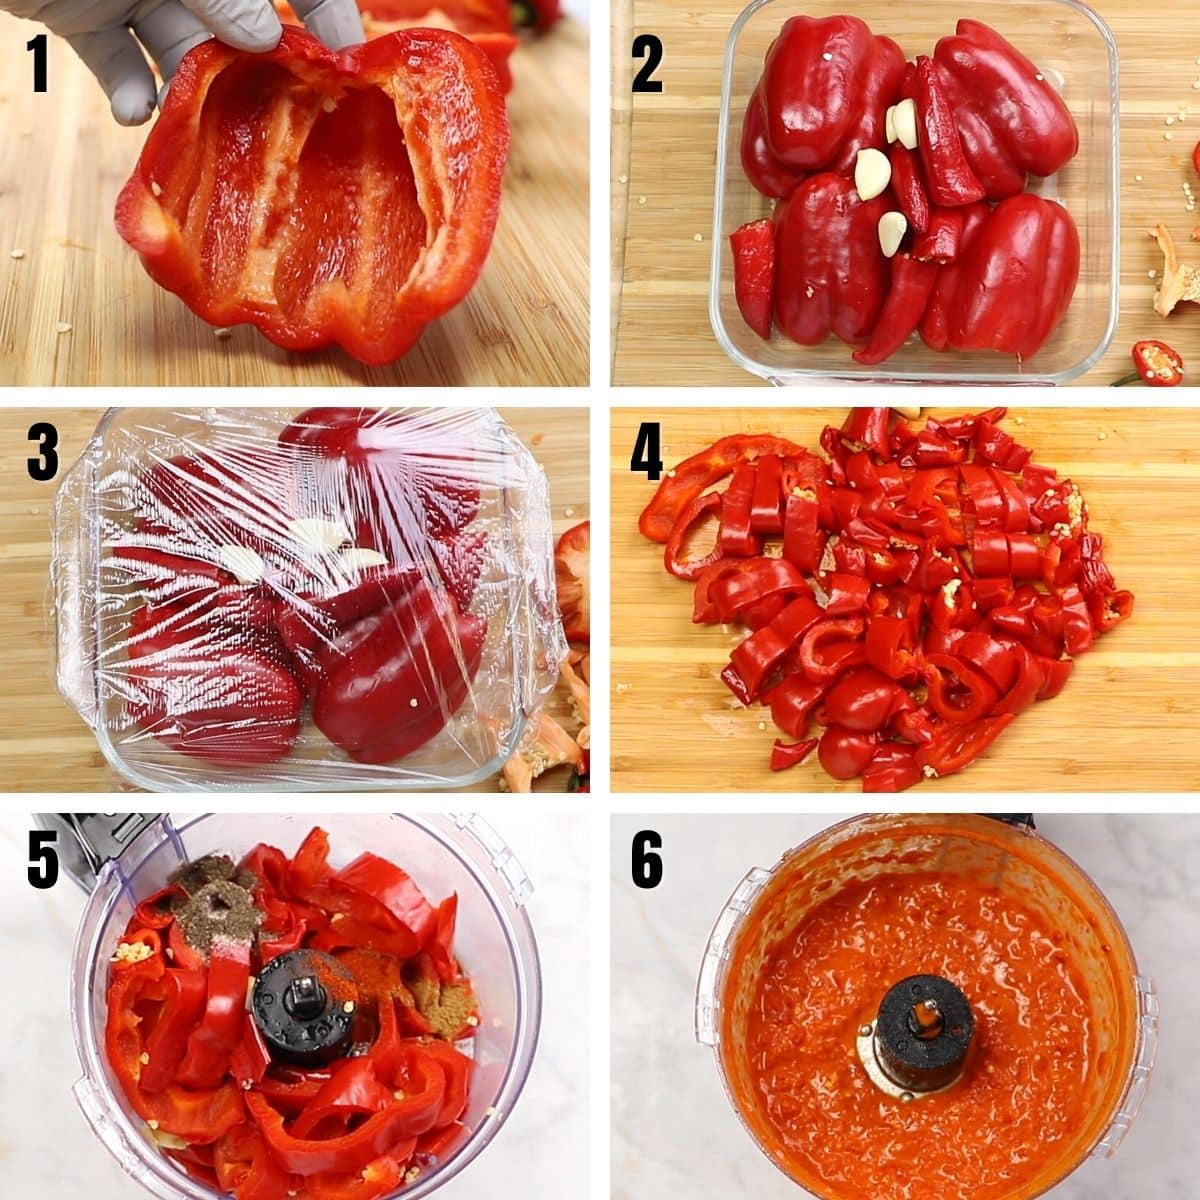 A collage of 6 images showing how to make harissa.